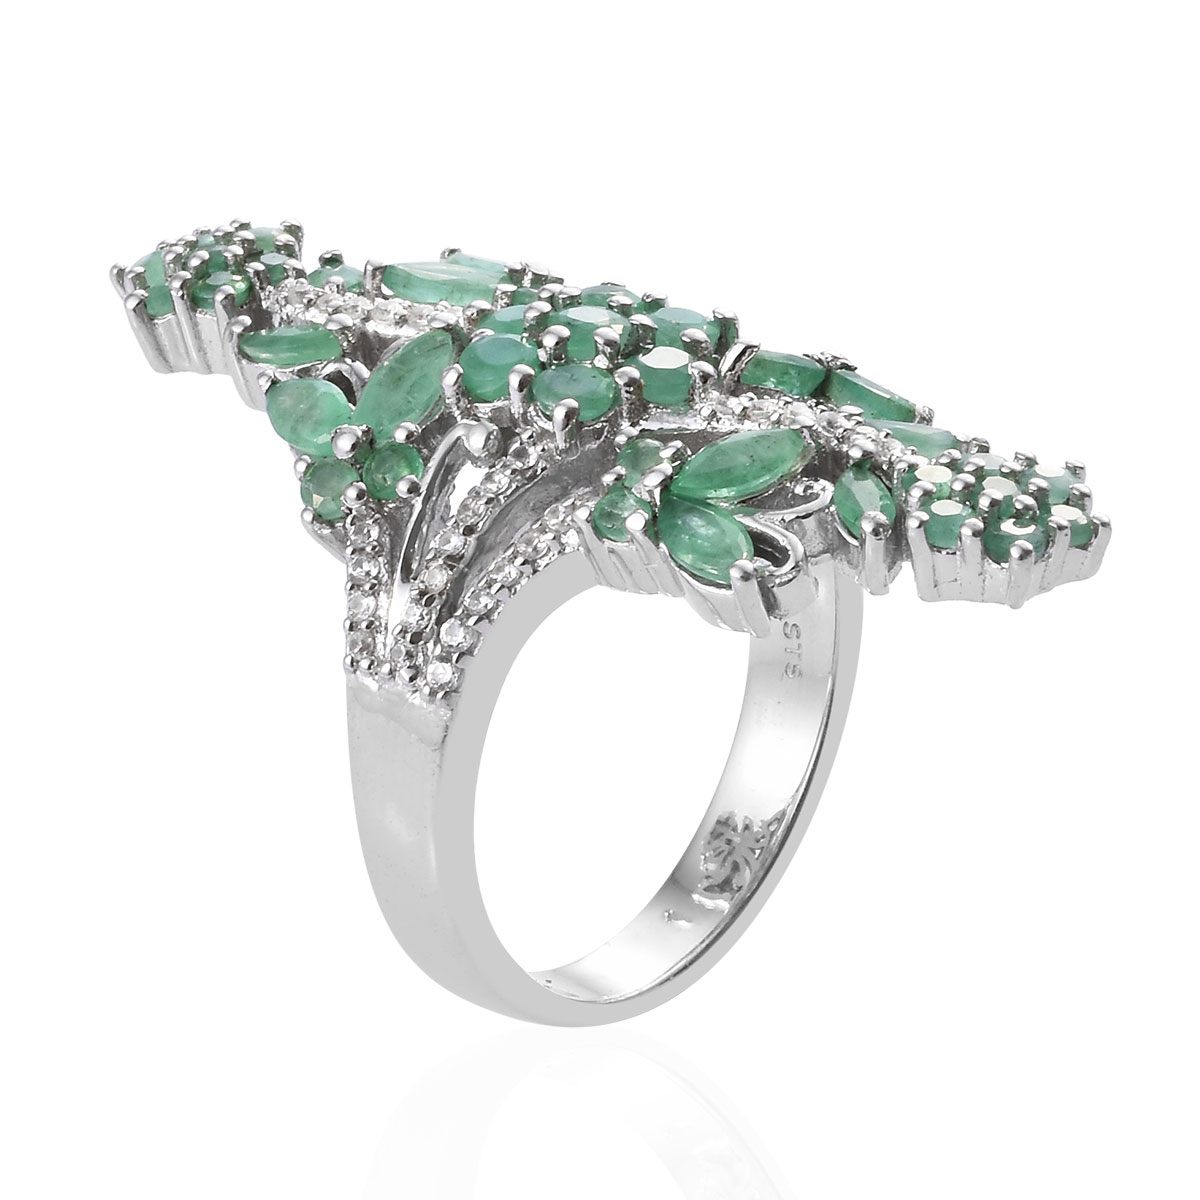 Socoto Emerald, Cambodian Zircon Ring in Platinum Over Sterling Silver (Size 6.0) 3.52 ctw